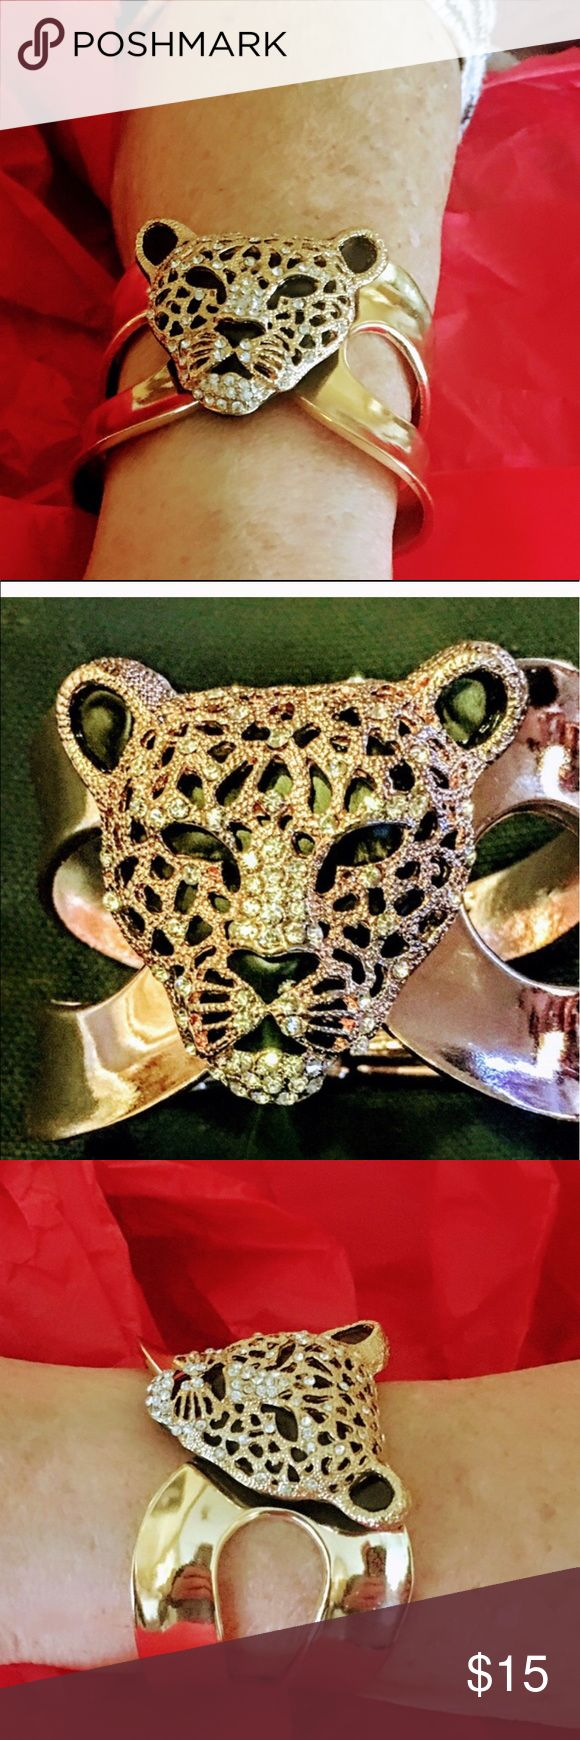 Stunning Jaguar cuff   bracelet. Last one This is a beautiful piece the head of the Jaguar white stone that dazzle the face hold metal overlay cuff  this was a big seller last one left.   Brand new never worn ticket fell off lovely  Jewelry Bracelets